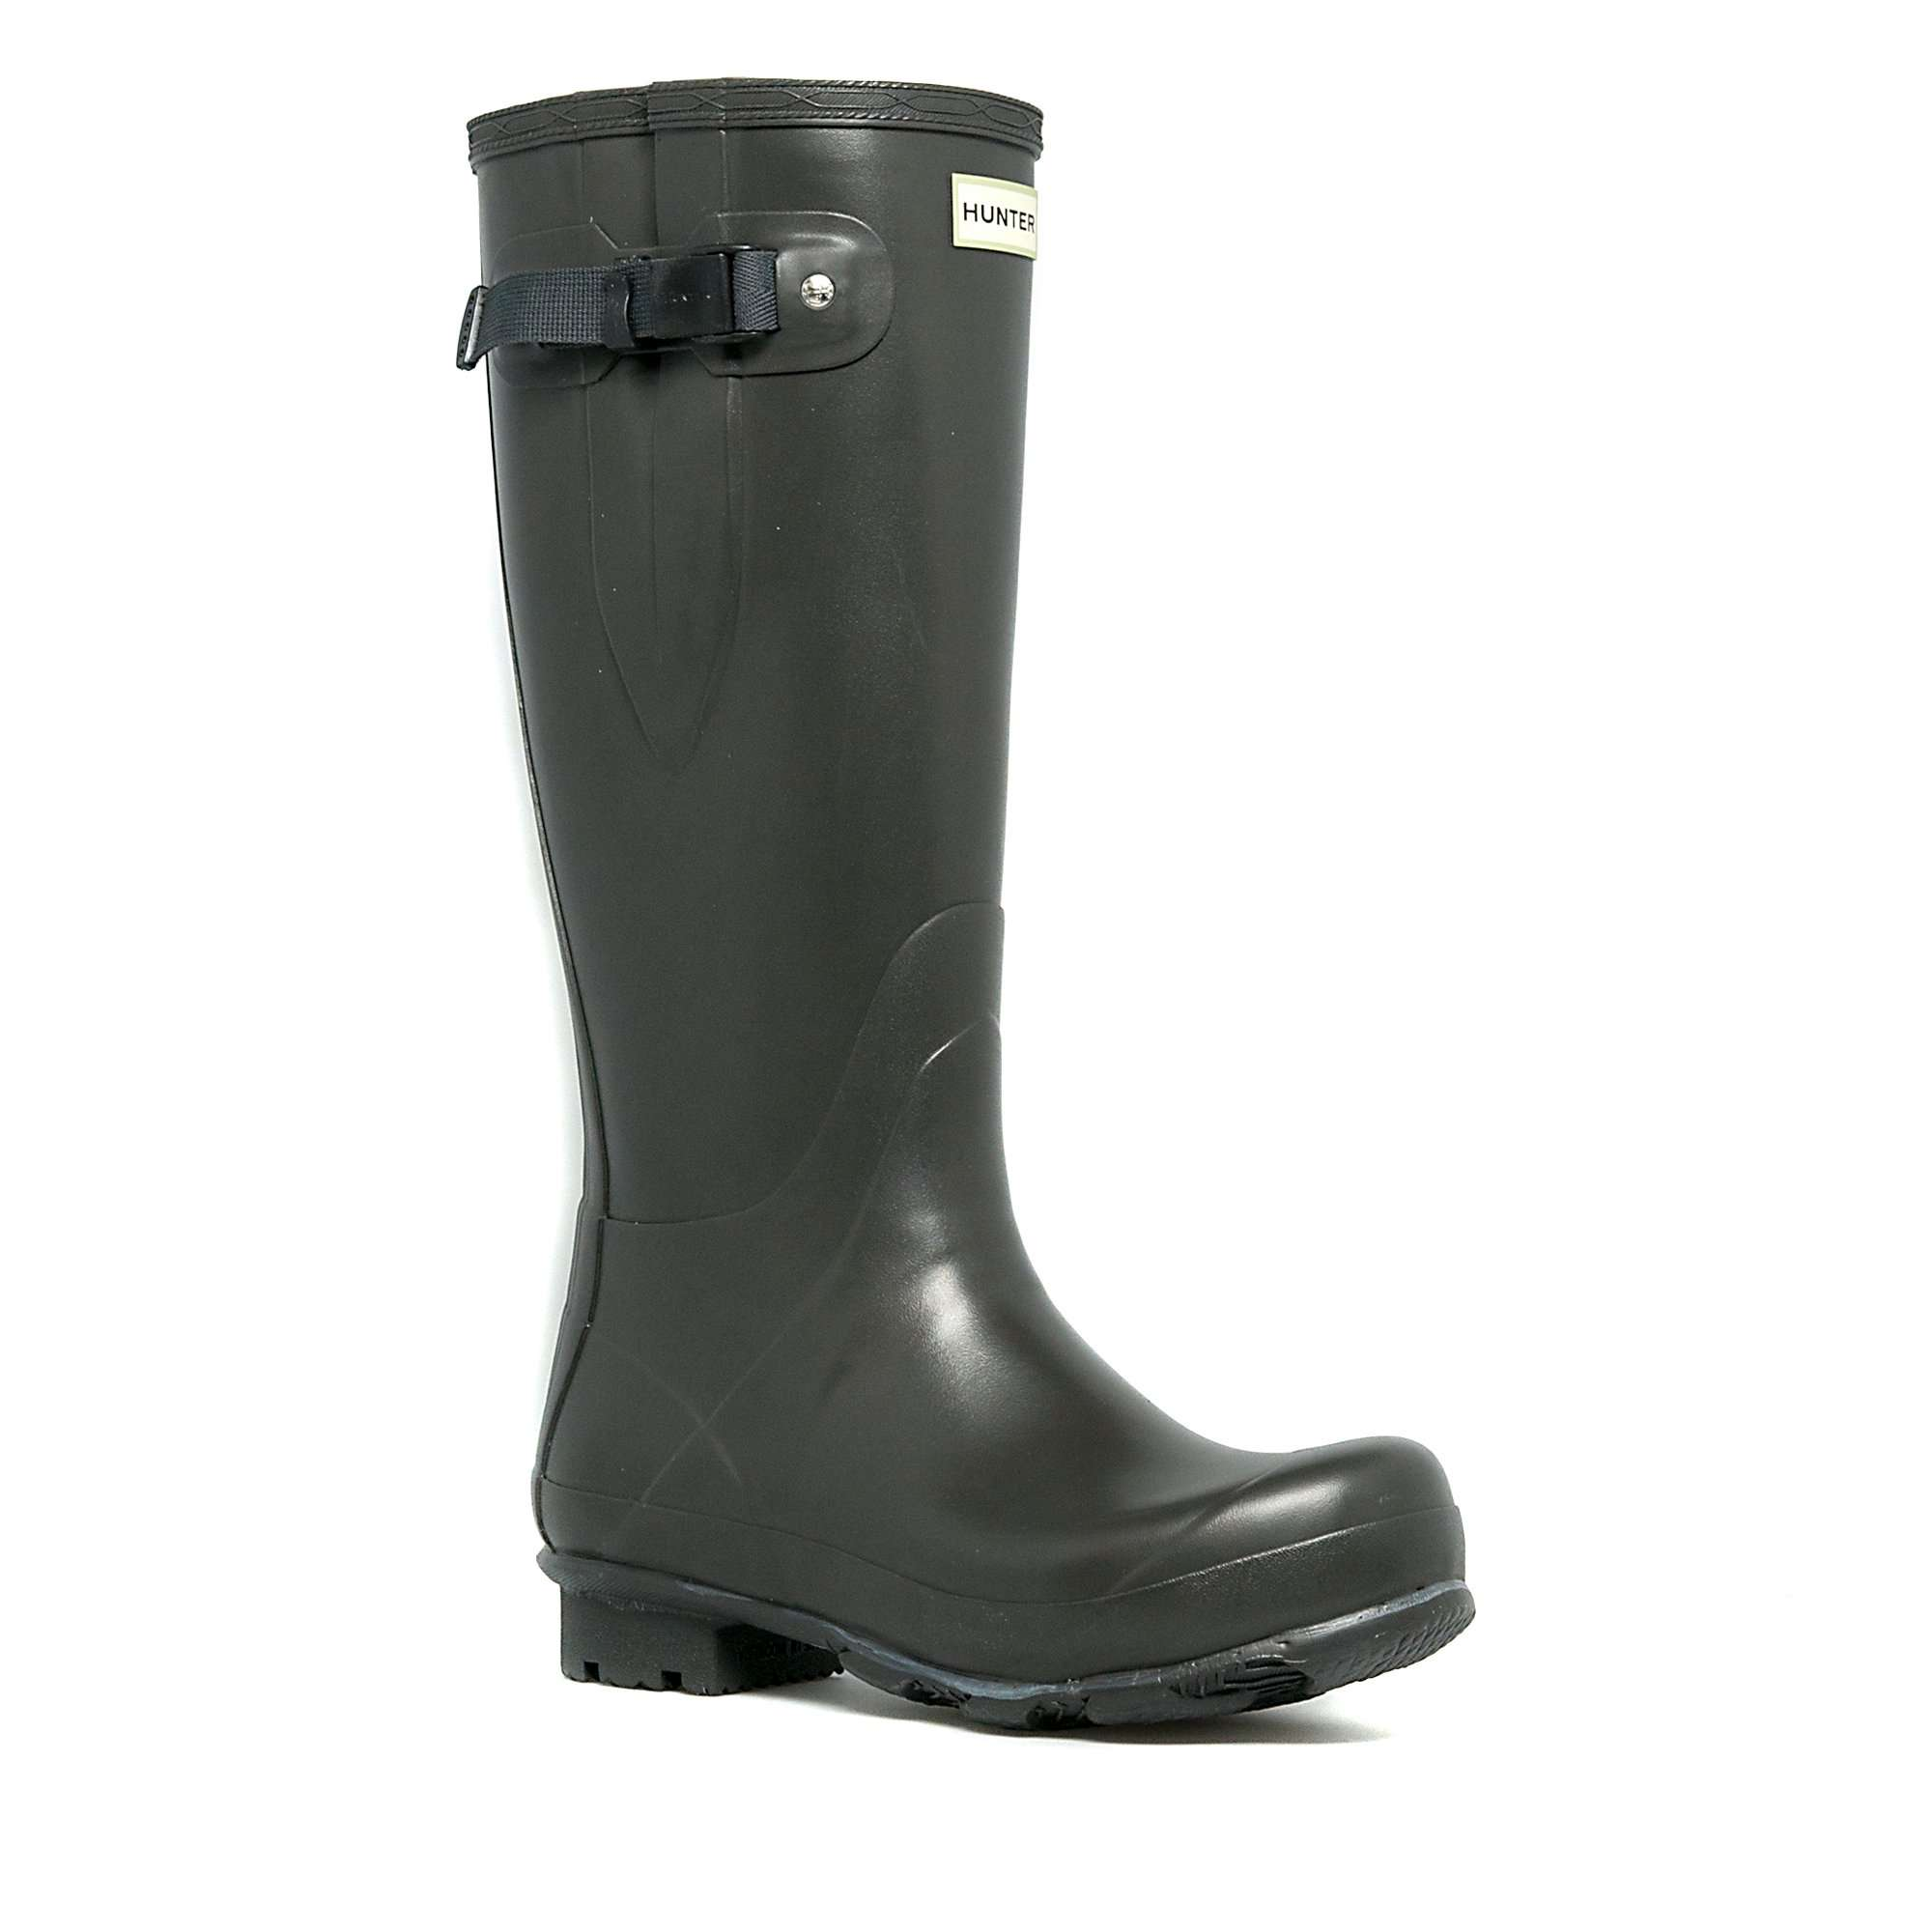 HUNTER Men's Norris Field Adjustable Wellington Boot